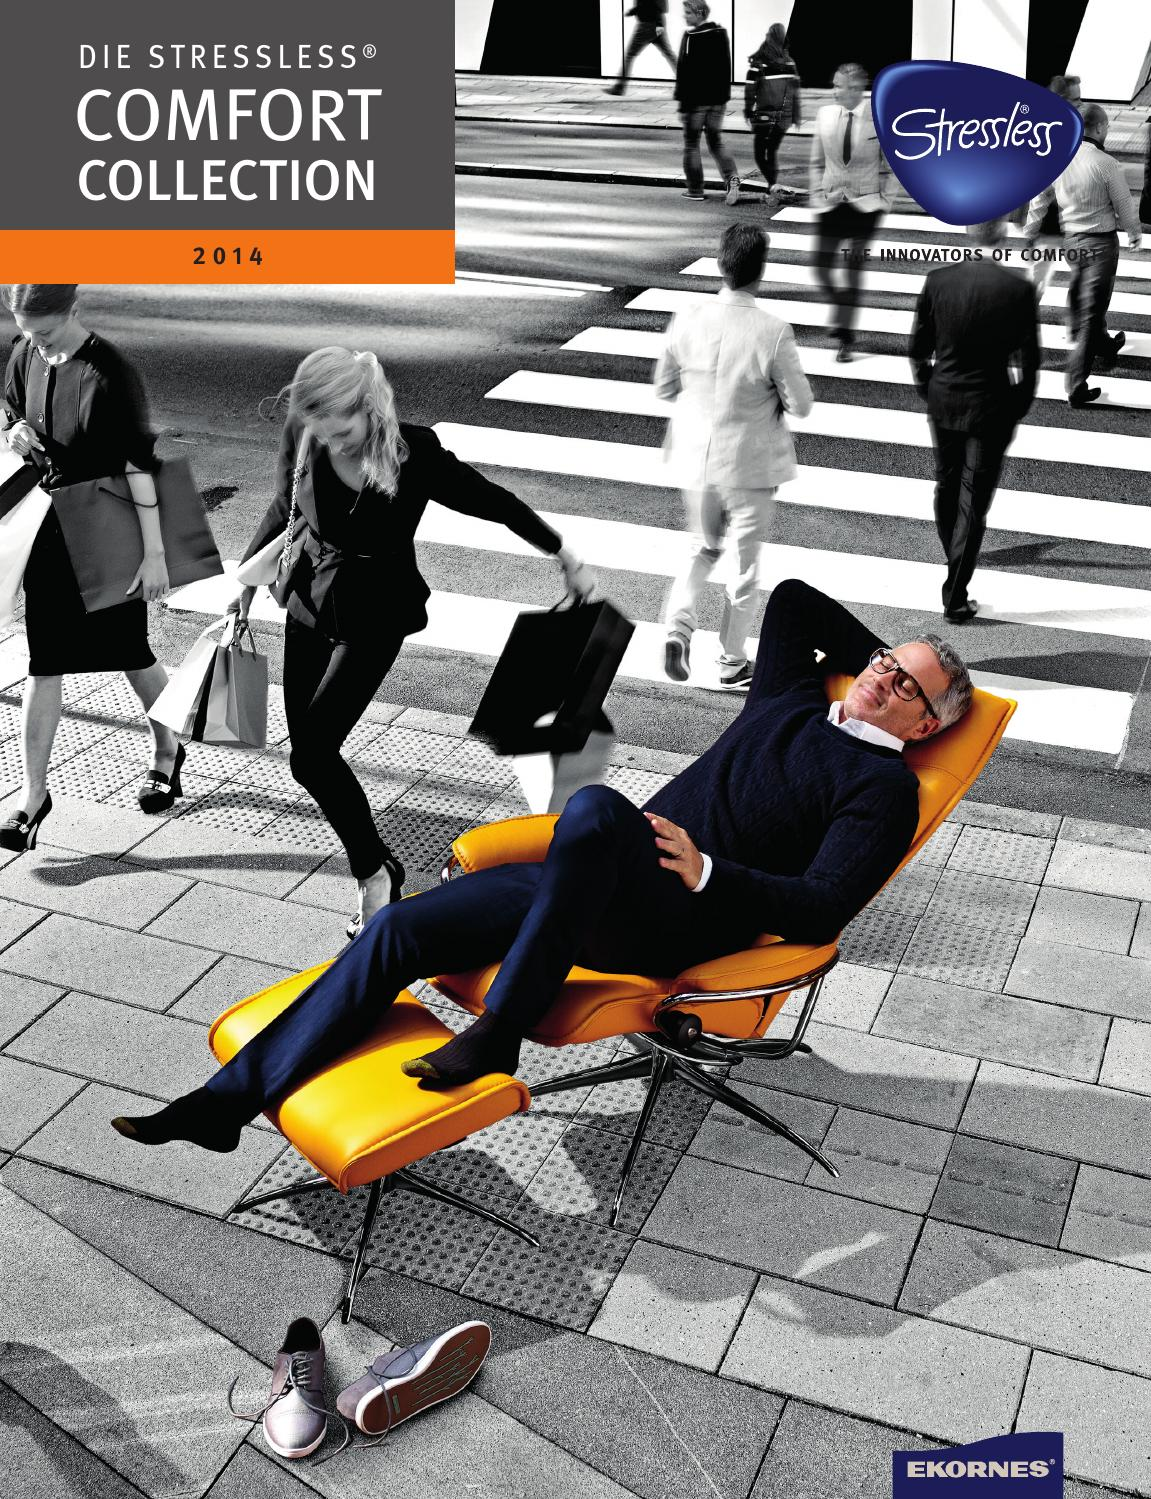 Fischer Kelkheim Stressless Comfort Collection 2014 By Perspektive Werbeagentur Issuu